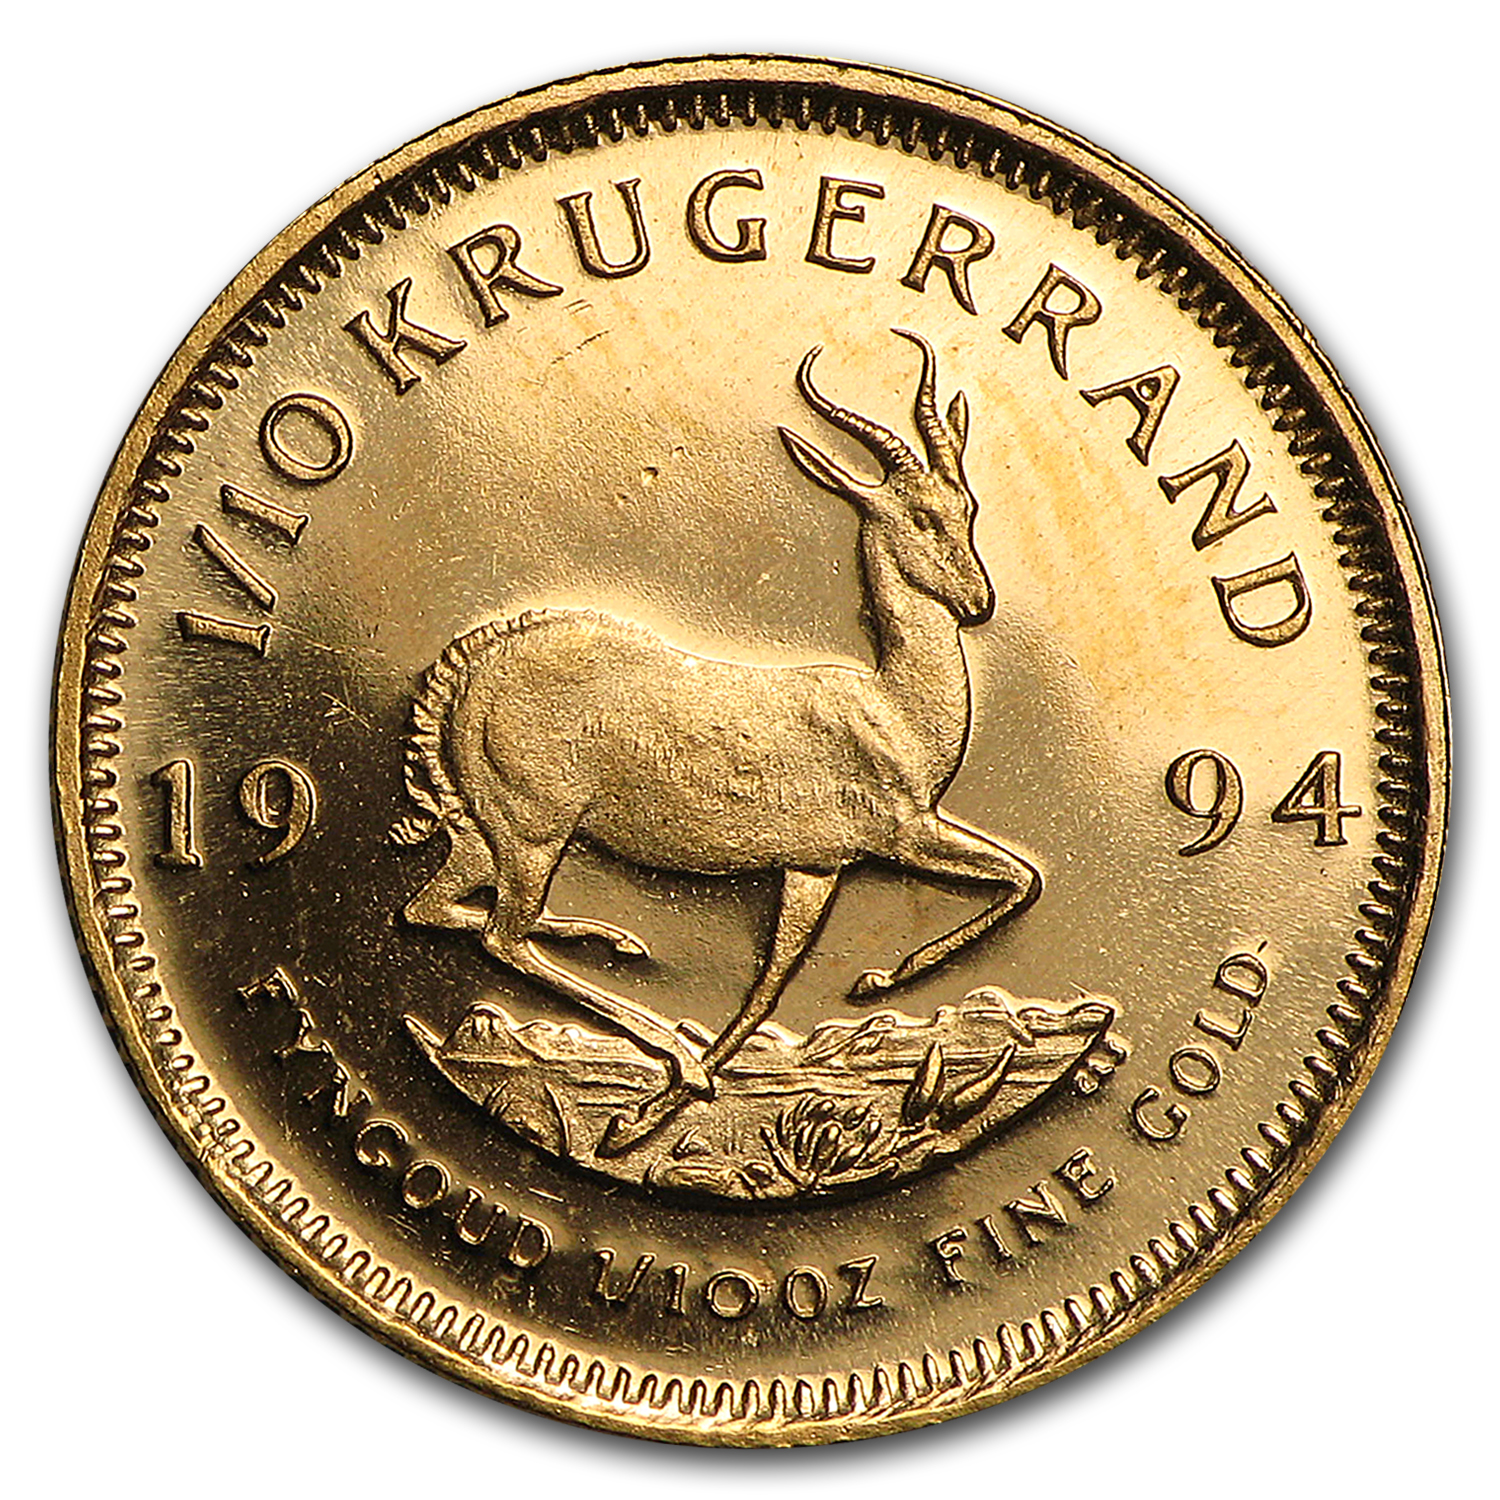 1994 South Africa 1/10 oz Gold Krugerrand BU